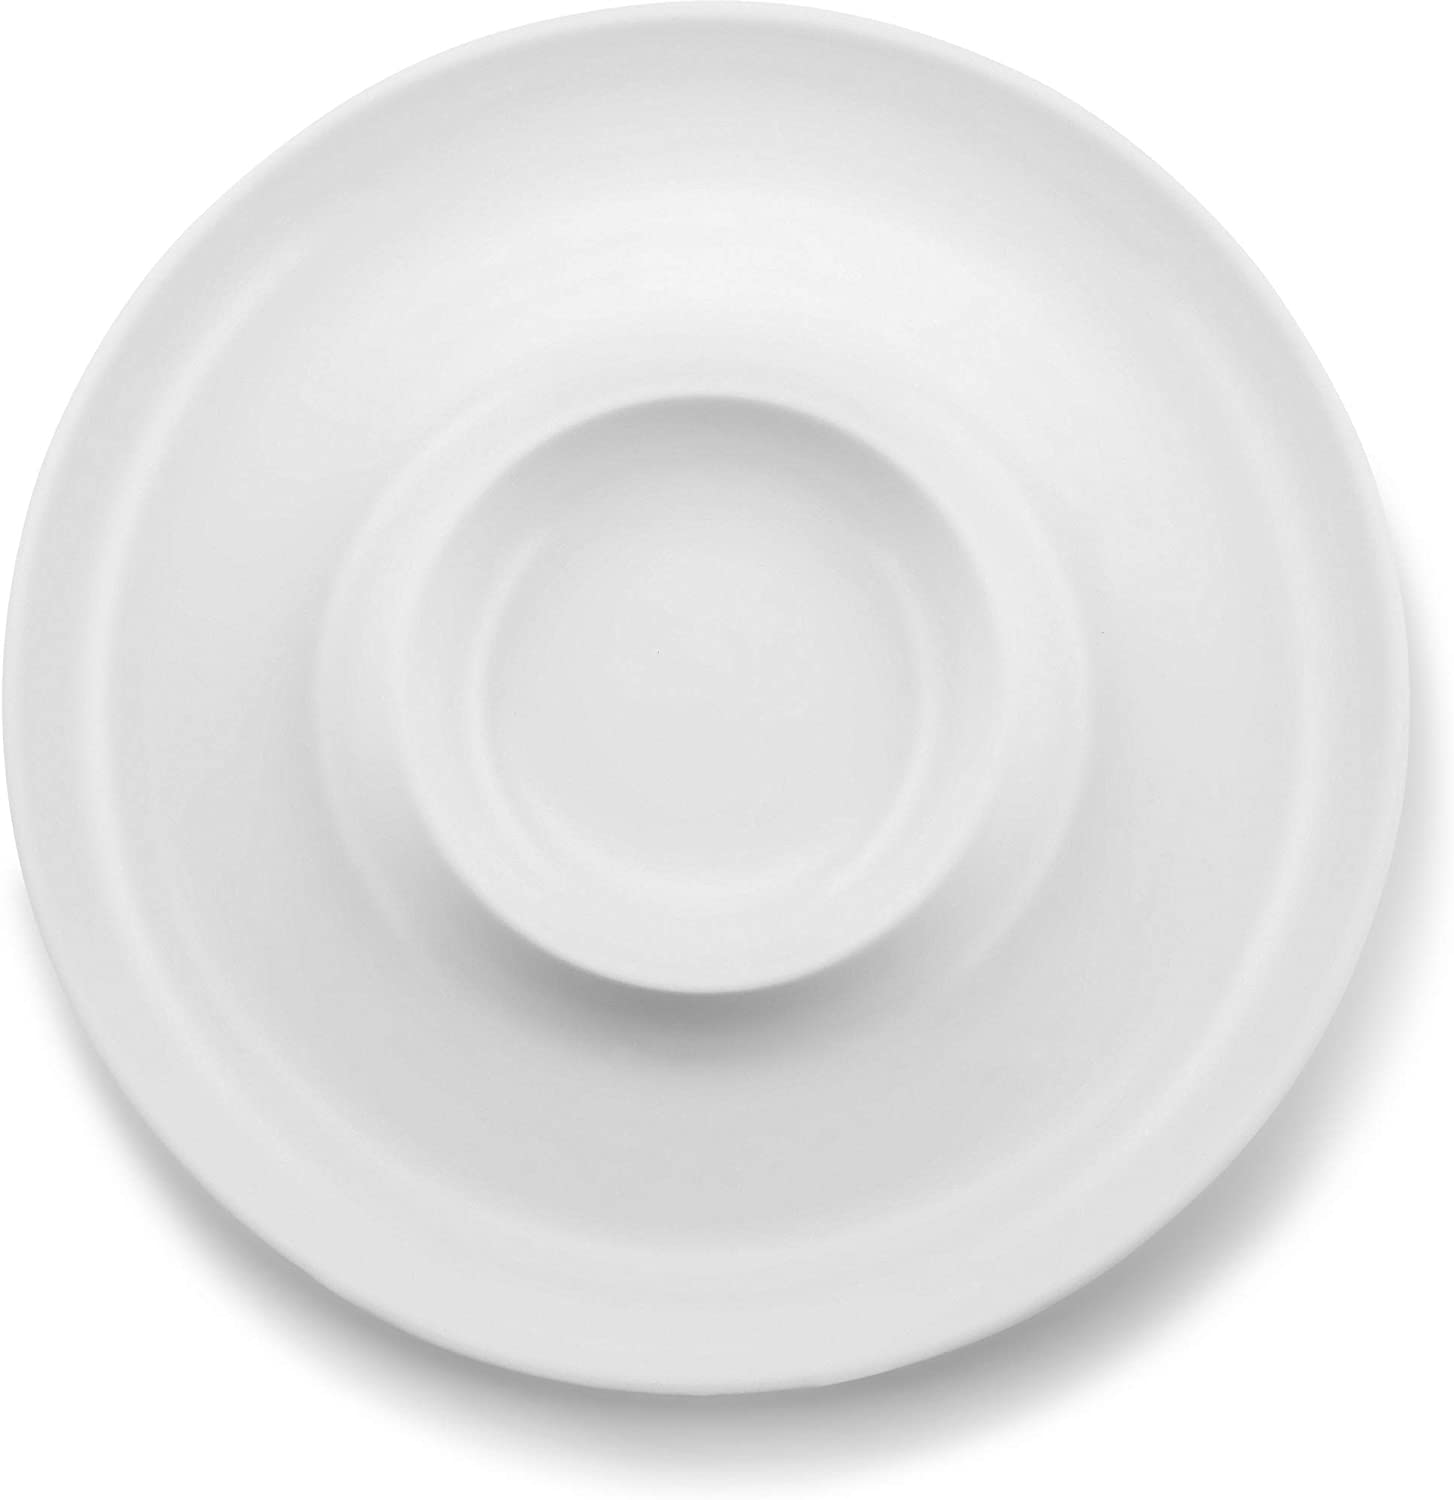 KooK Chip & Dip Ceramic Serving Dish Bowl, White, Perfect for Superbowl Parties - 13 Inch